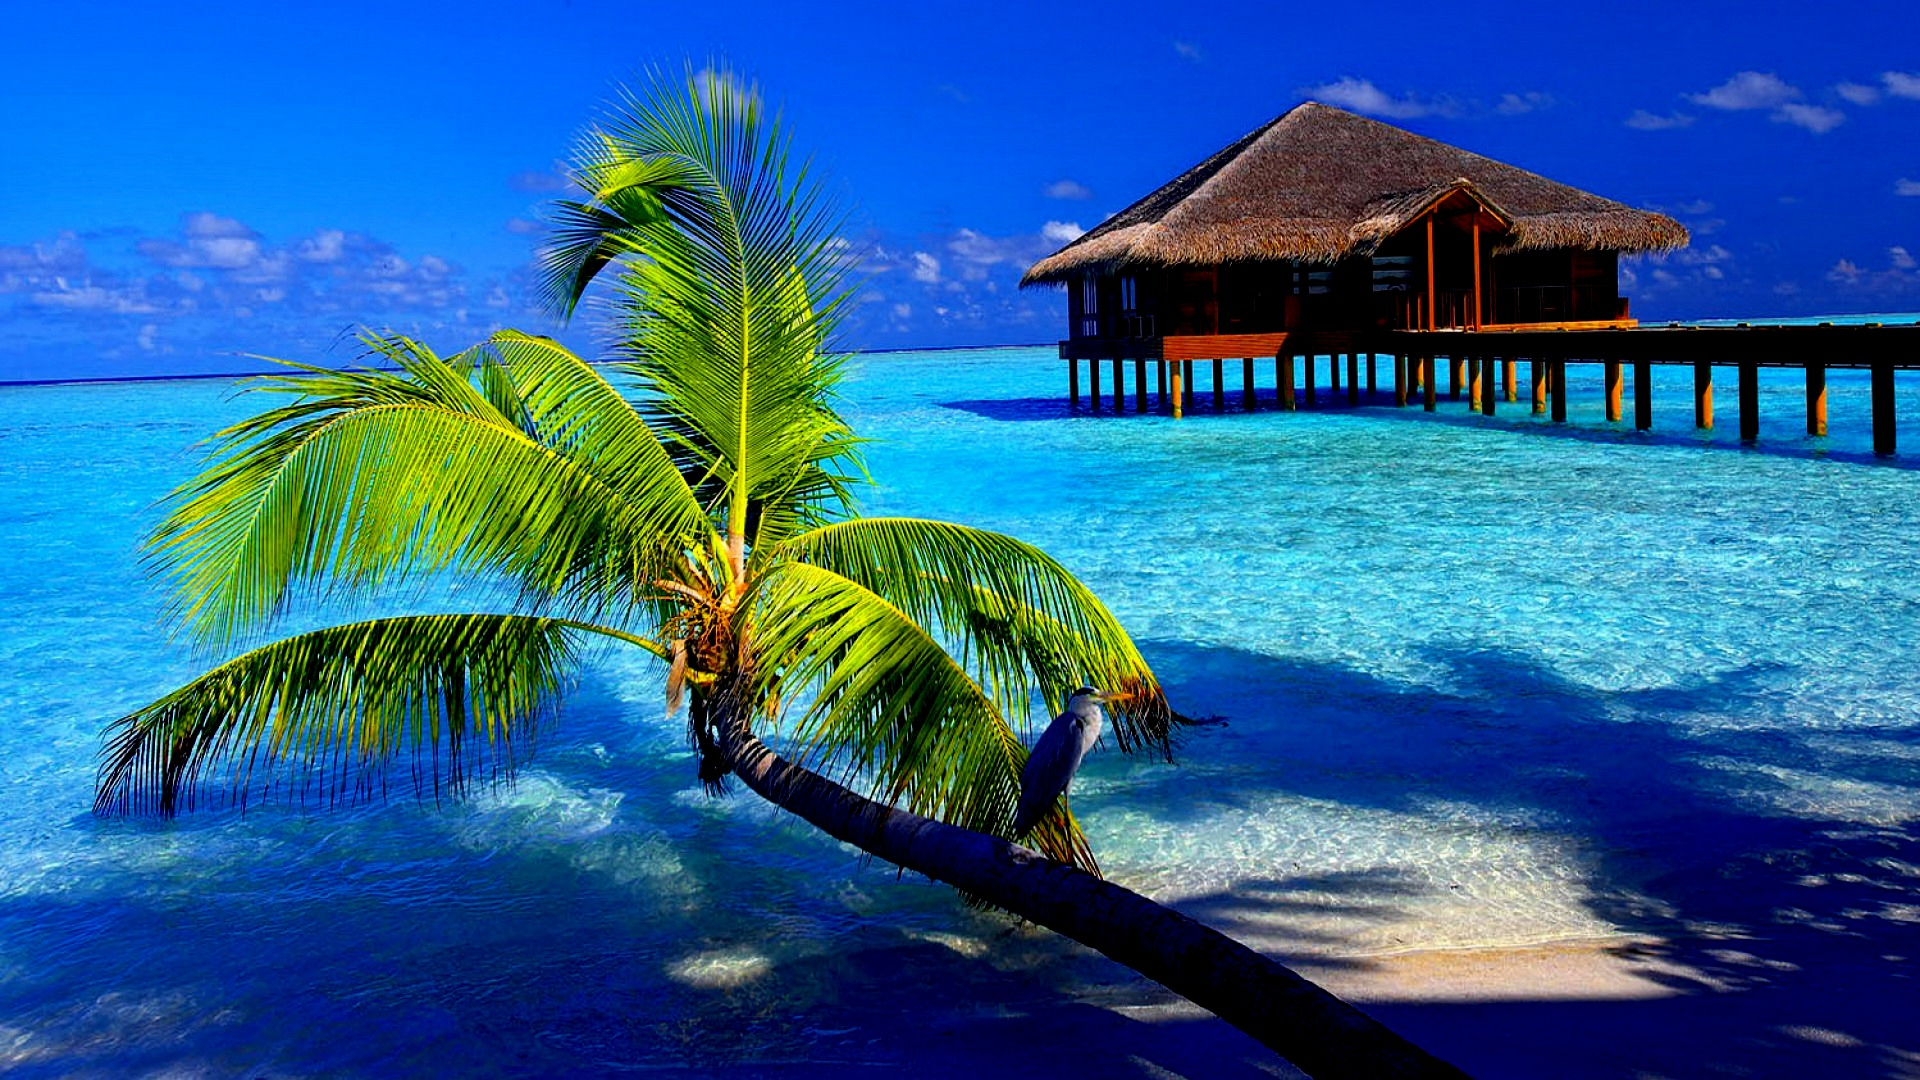 Desktop Wallpaper Beautiful Tropical Scenes